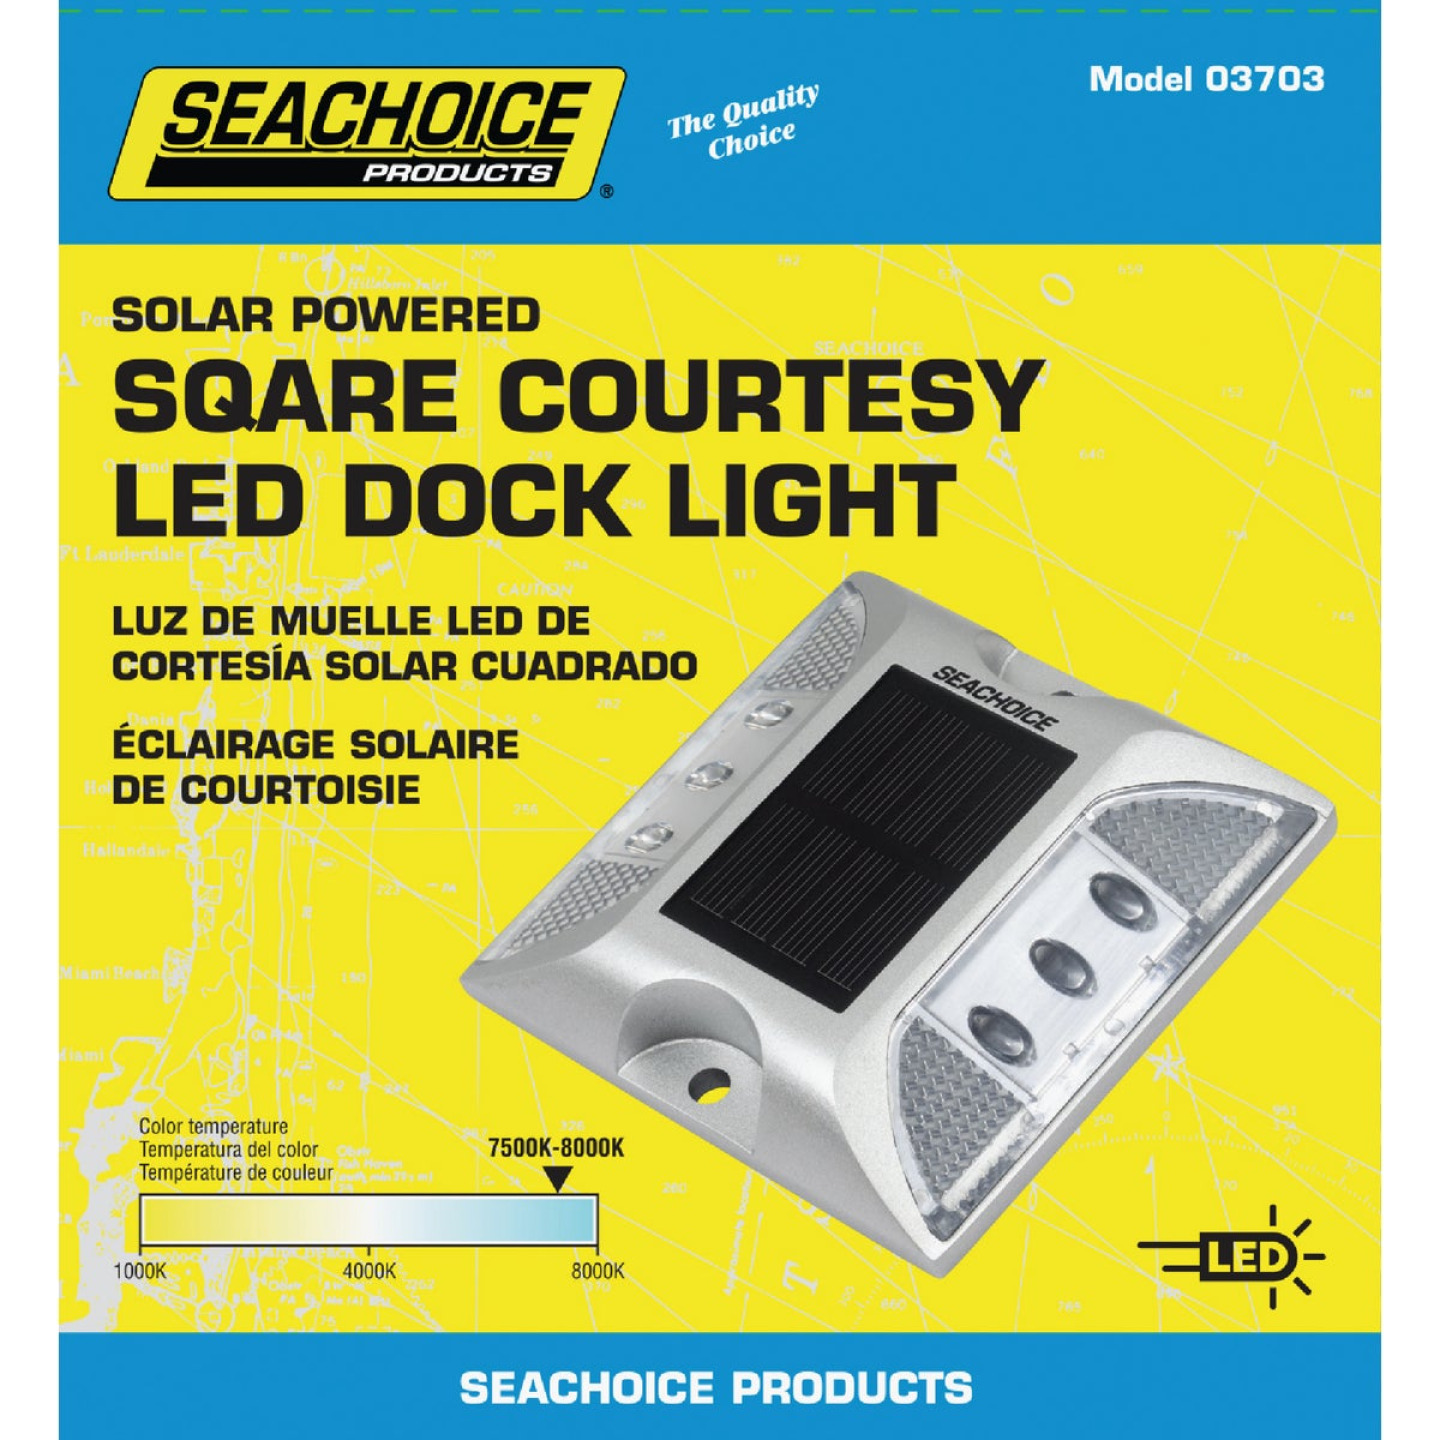 Seachoice 4-3/4 In. x 1 In. Silver LED Square Courtesy Solar Deck Light Image 1